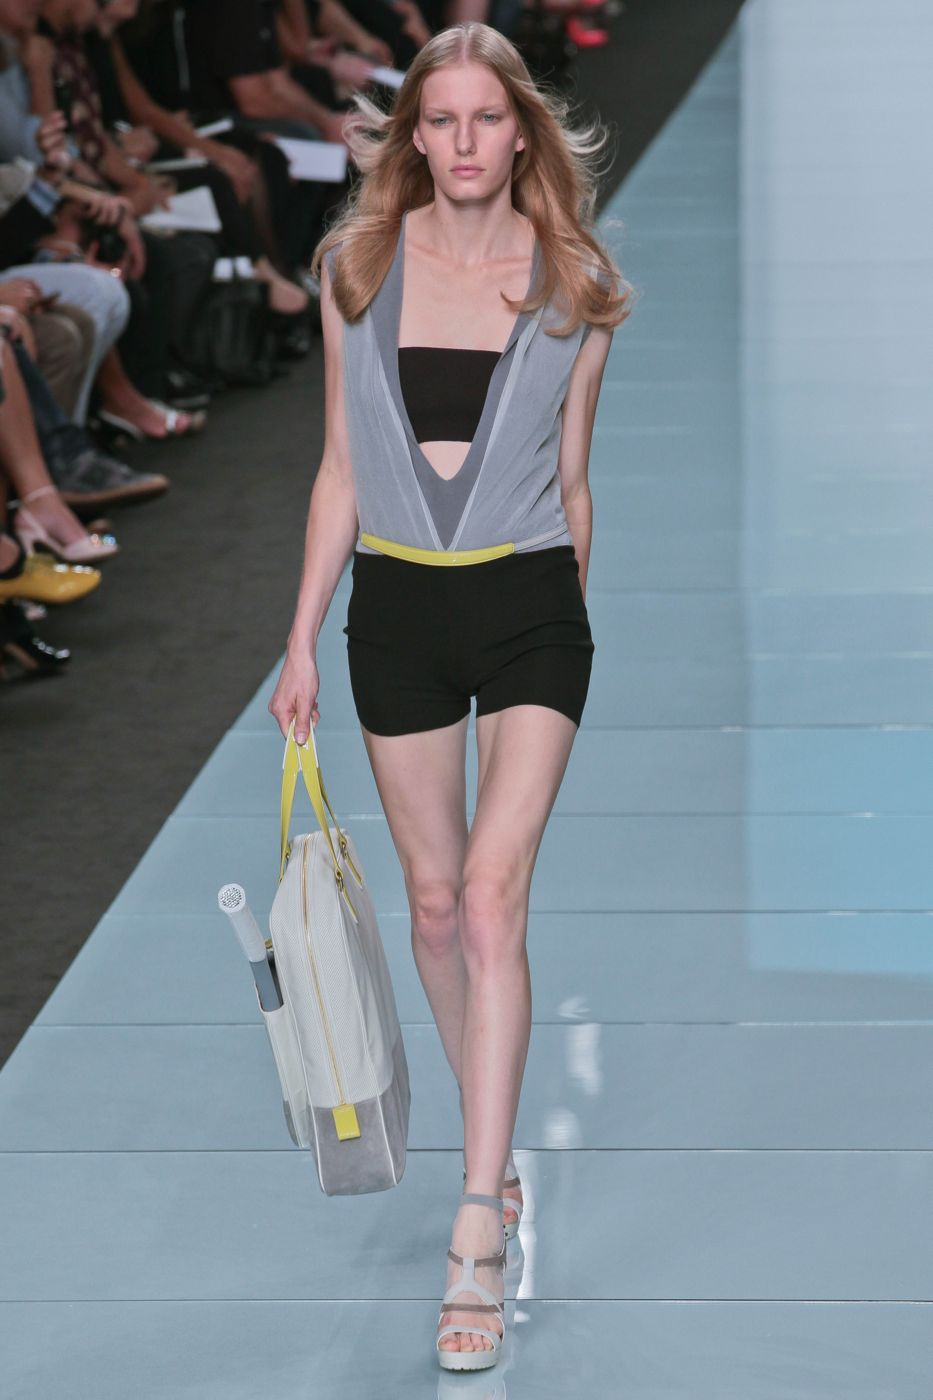 Anteprima Spring Summer 2012 Women Catwalk